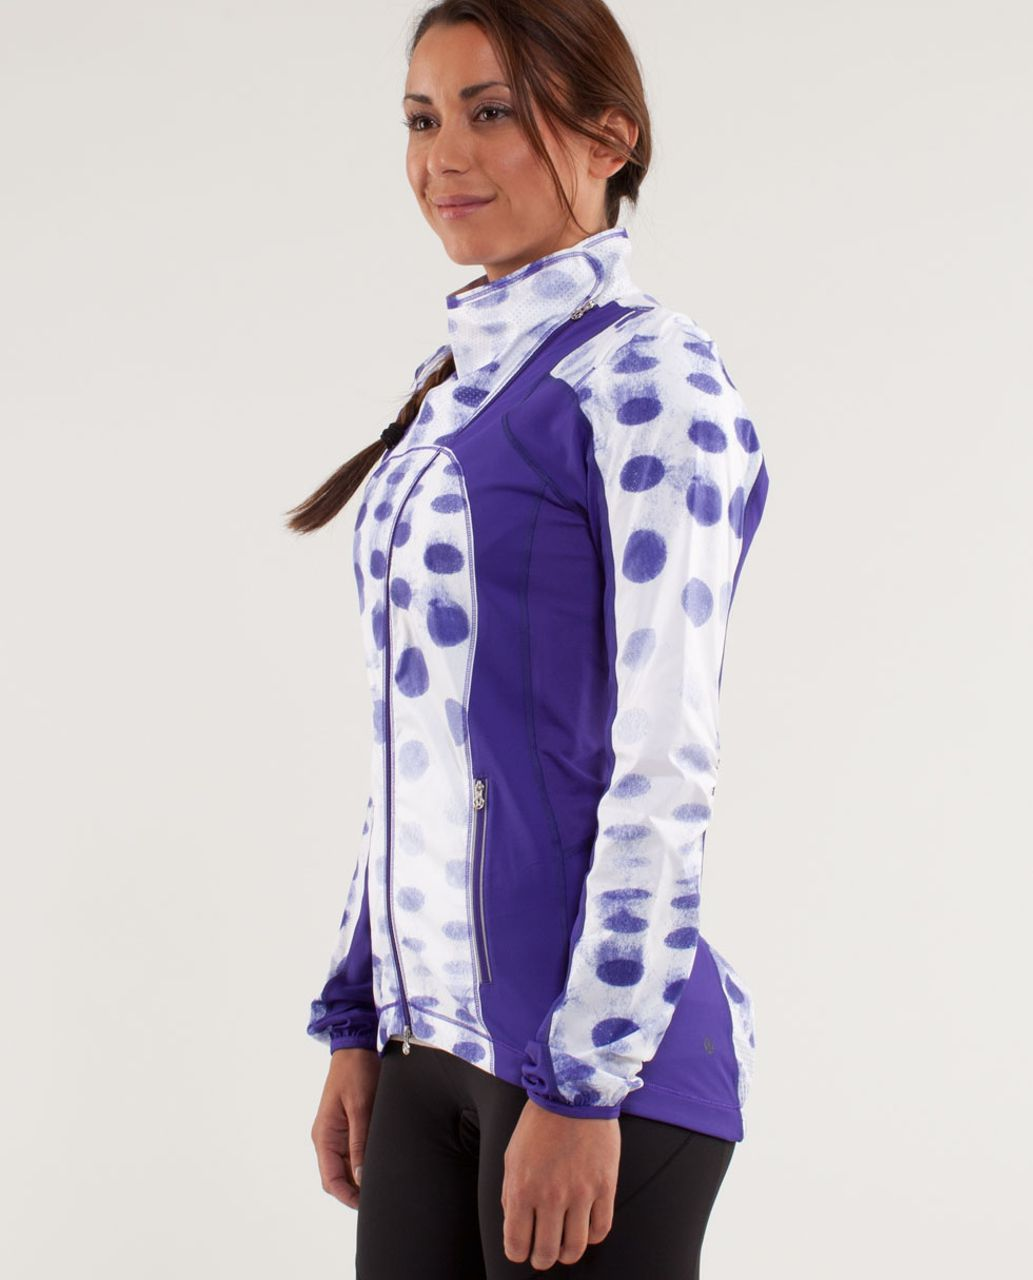 Lululemon Presta Packable Shirket - Seaside Dot White / Bruised Berry